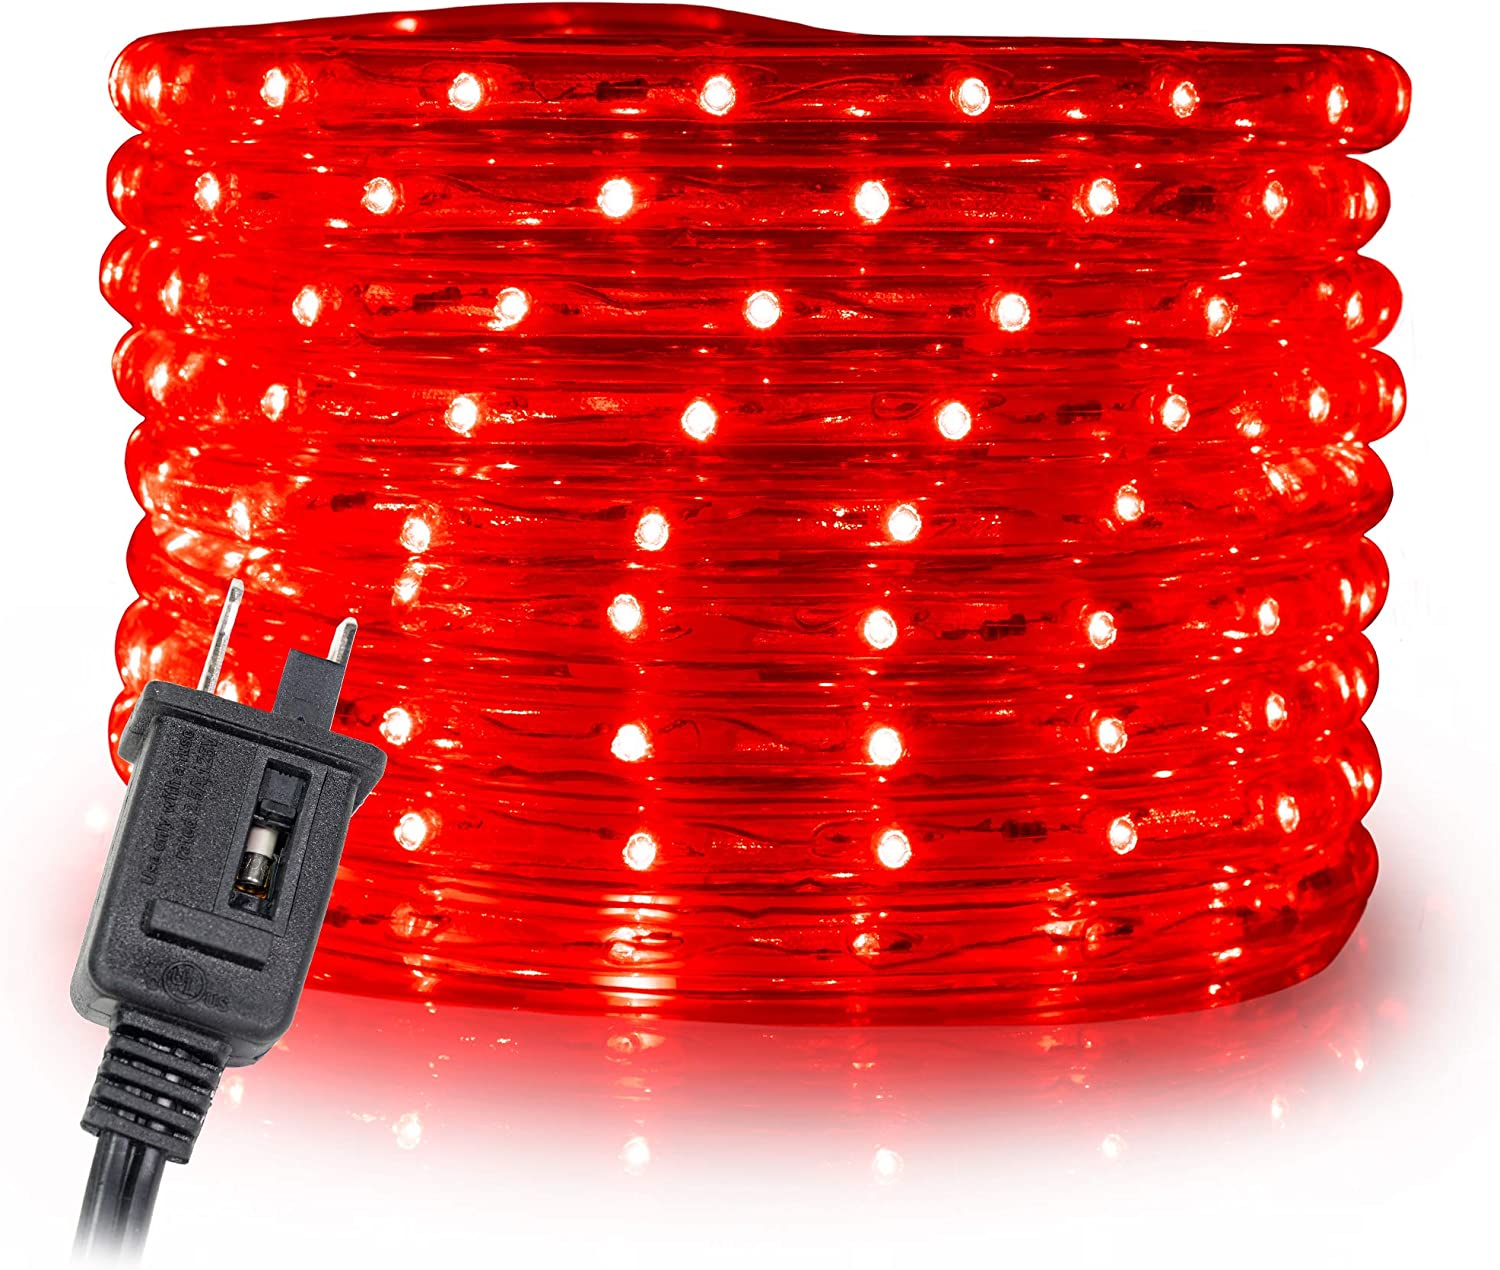 """WYZworks 150 feet 1/2"""" Thick RED Pre-Assembled LED Rope Lights with 10', 25', 50', 100' Option - Christmas Holiday Decoration Lighting 